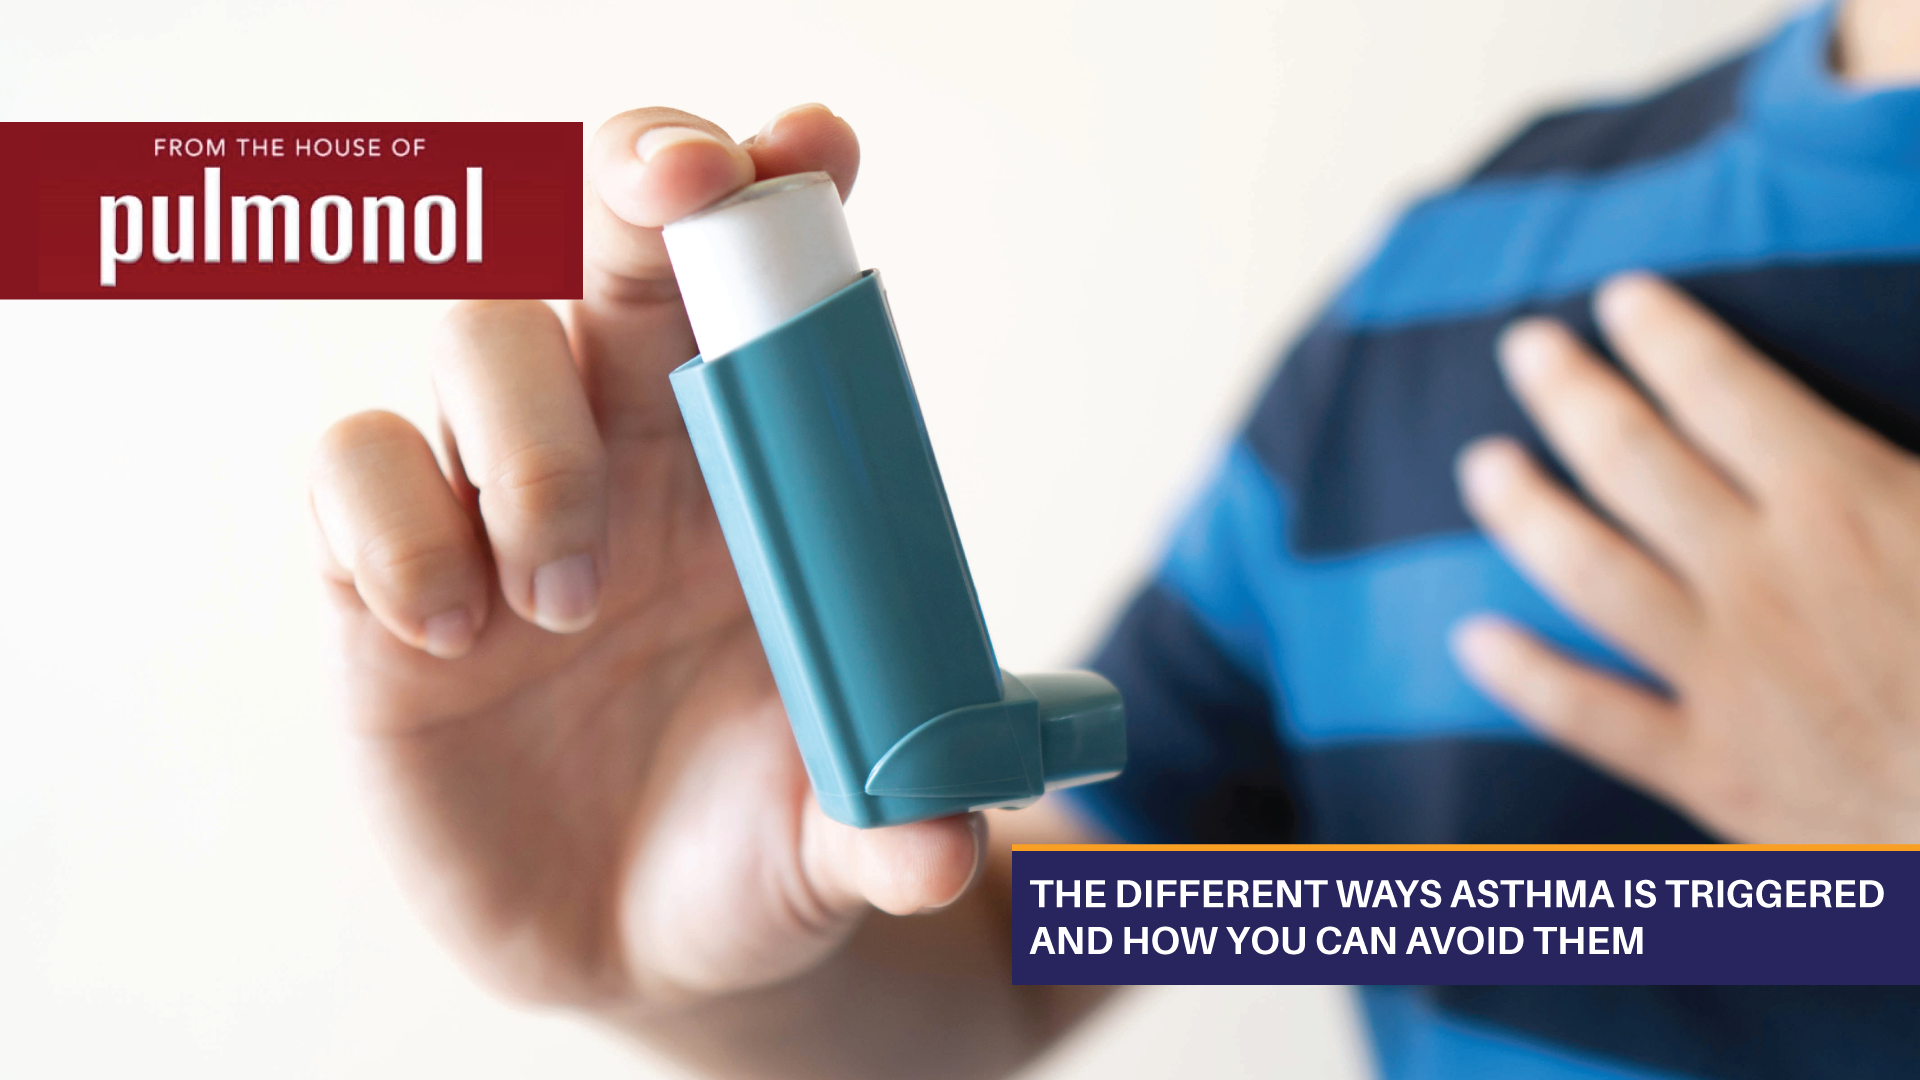 The Different Ways Asthma is Triggered and How You Can Avoid Them